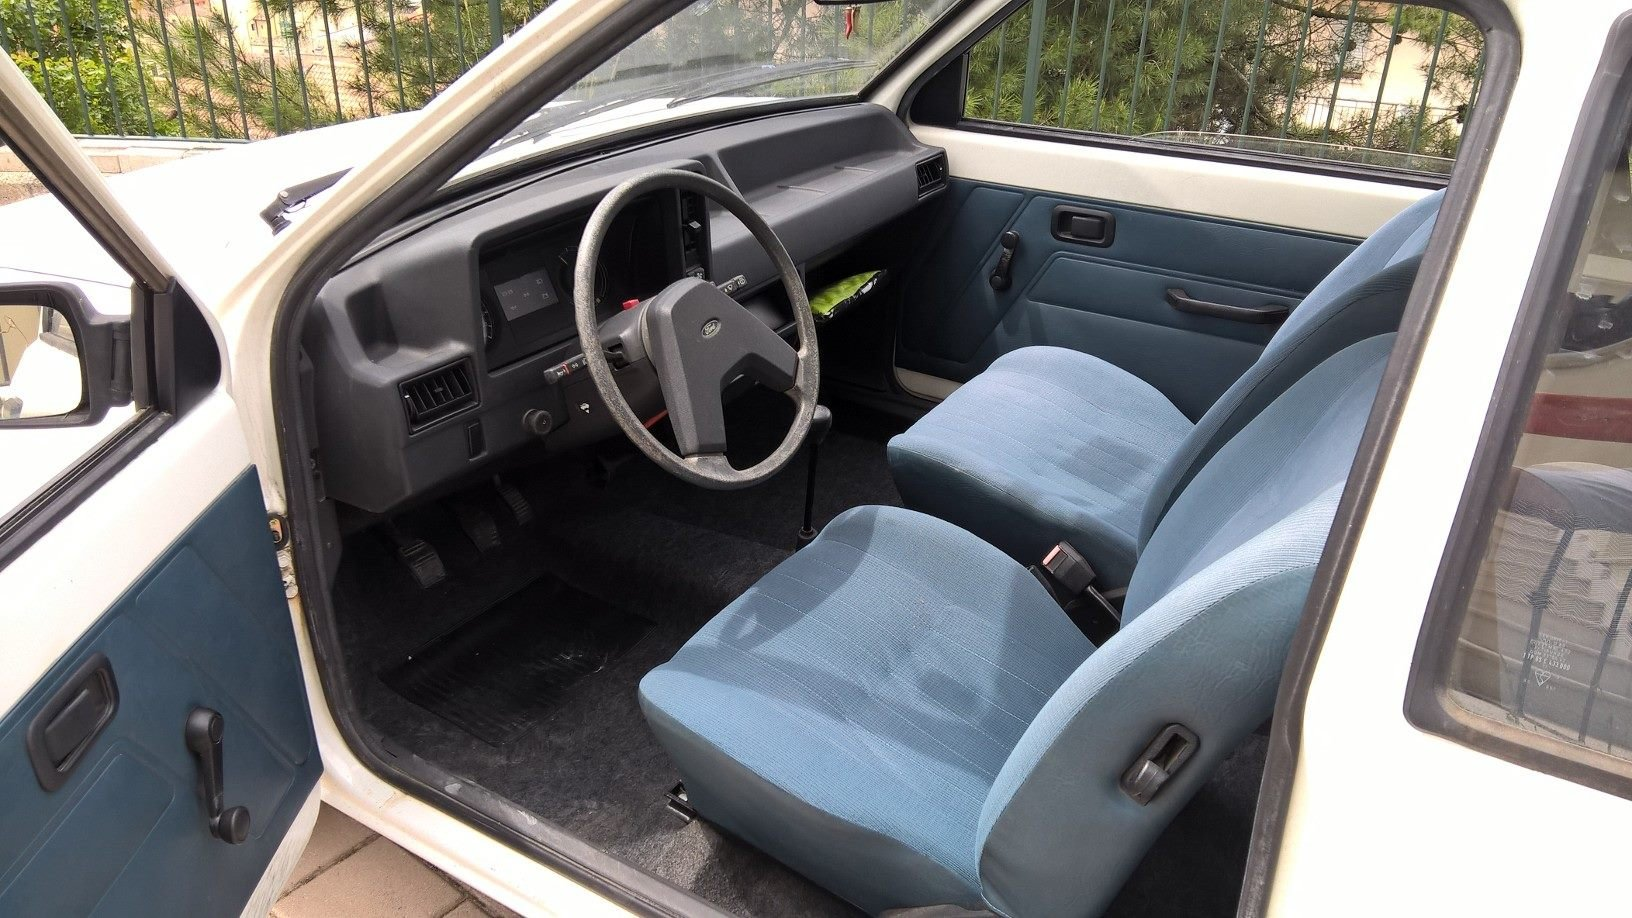 1980 Ford Escort 2 Door with 80,000 orig kms NEVER RESTORED For Sale (picture 4 of 6)